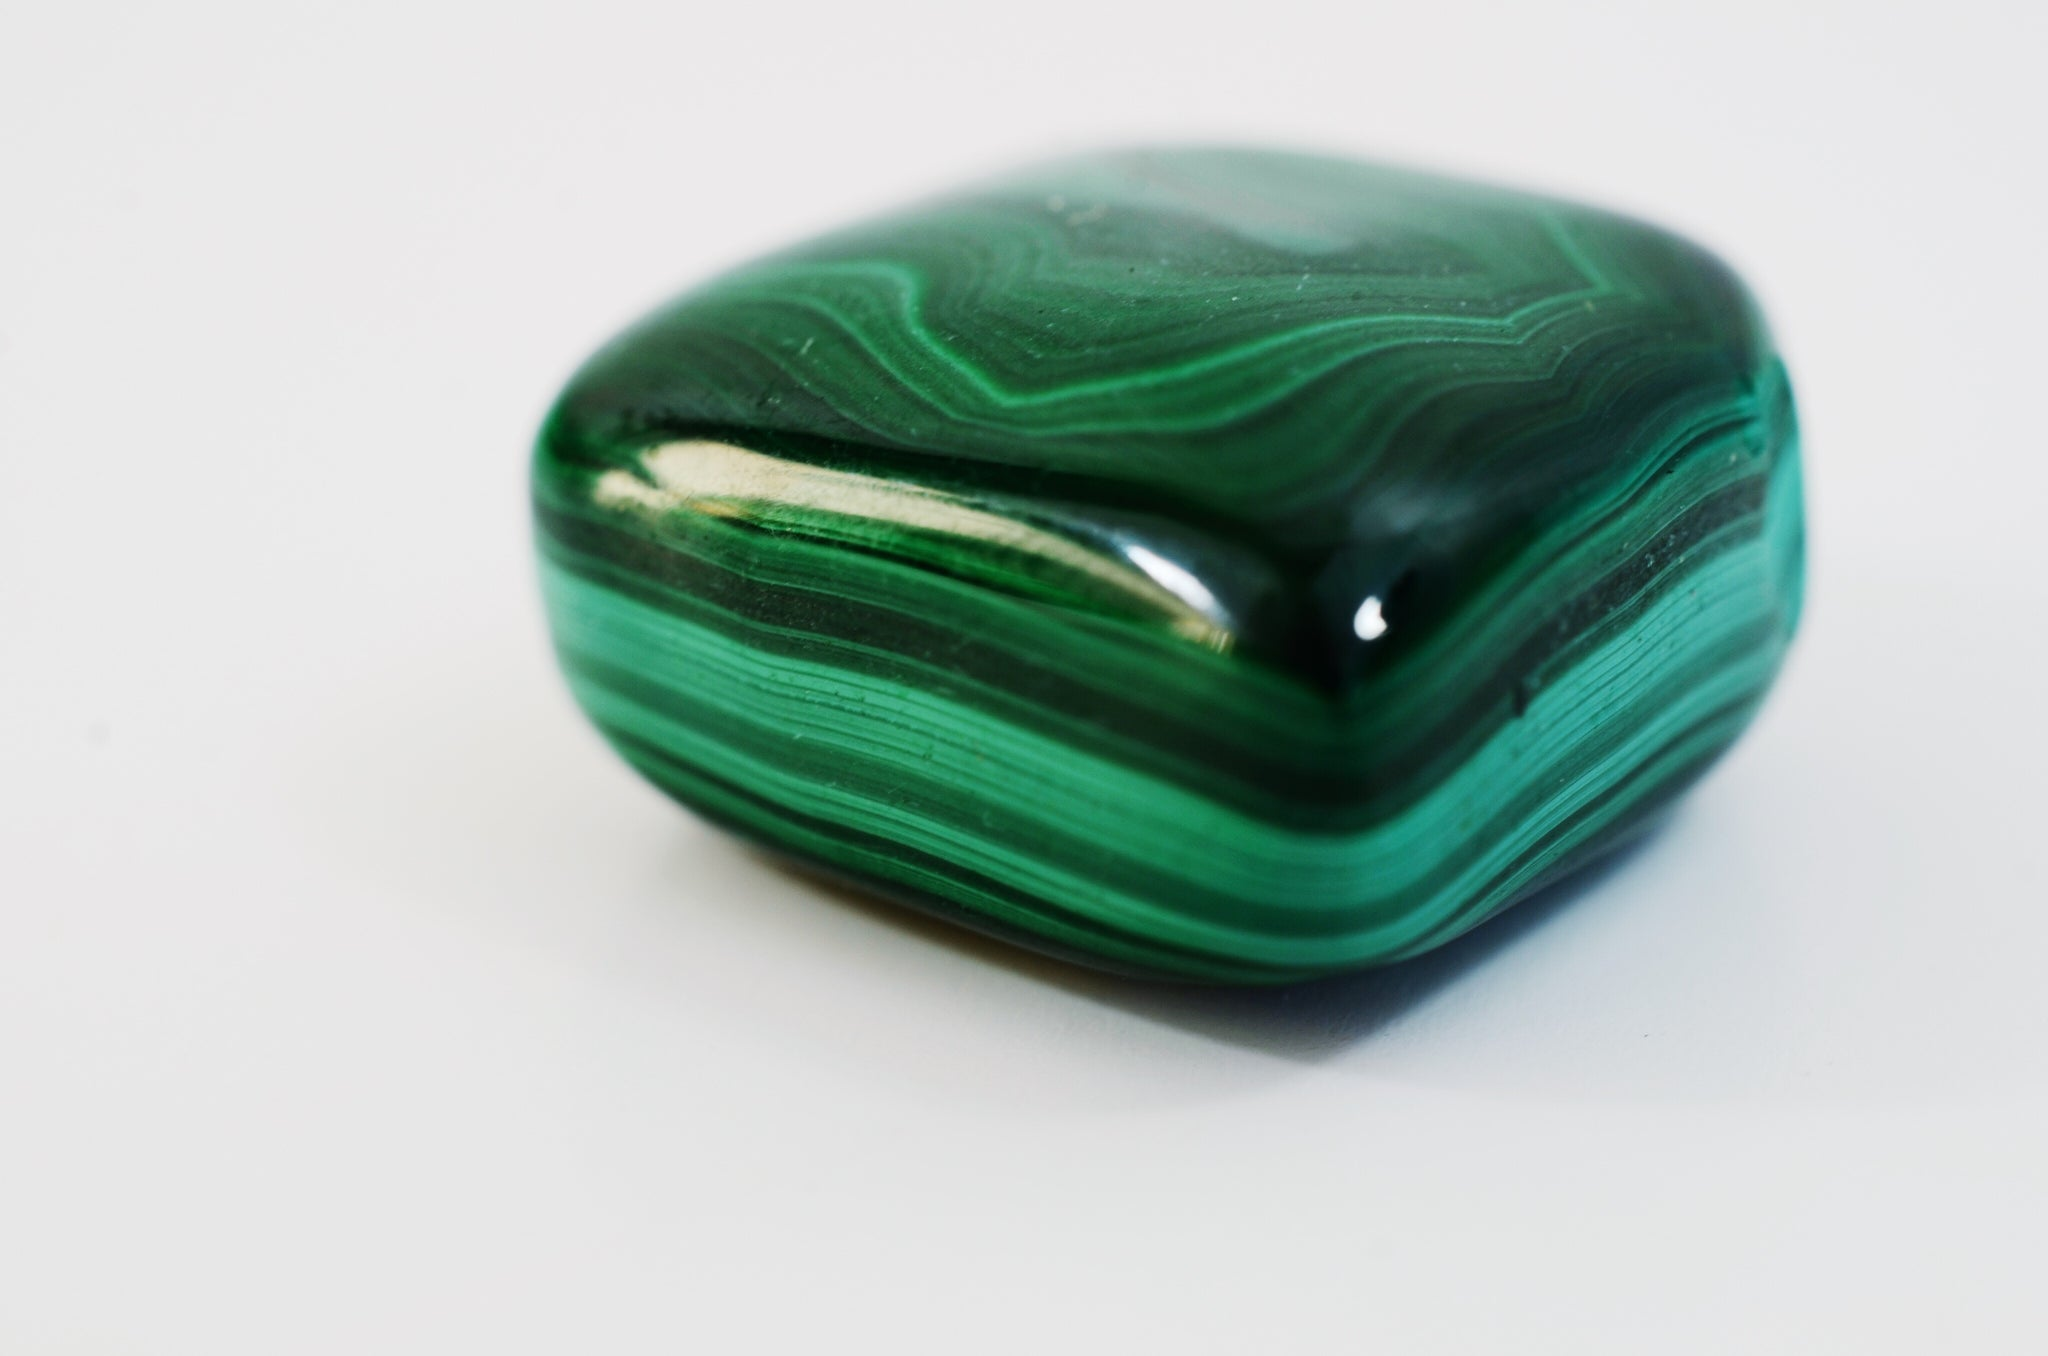 Malachite helps you make your own luck this St. Patrick's Day